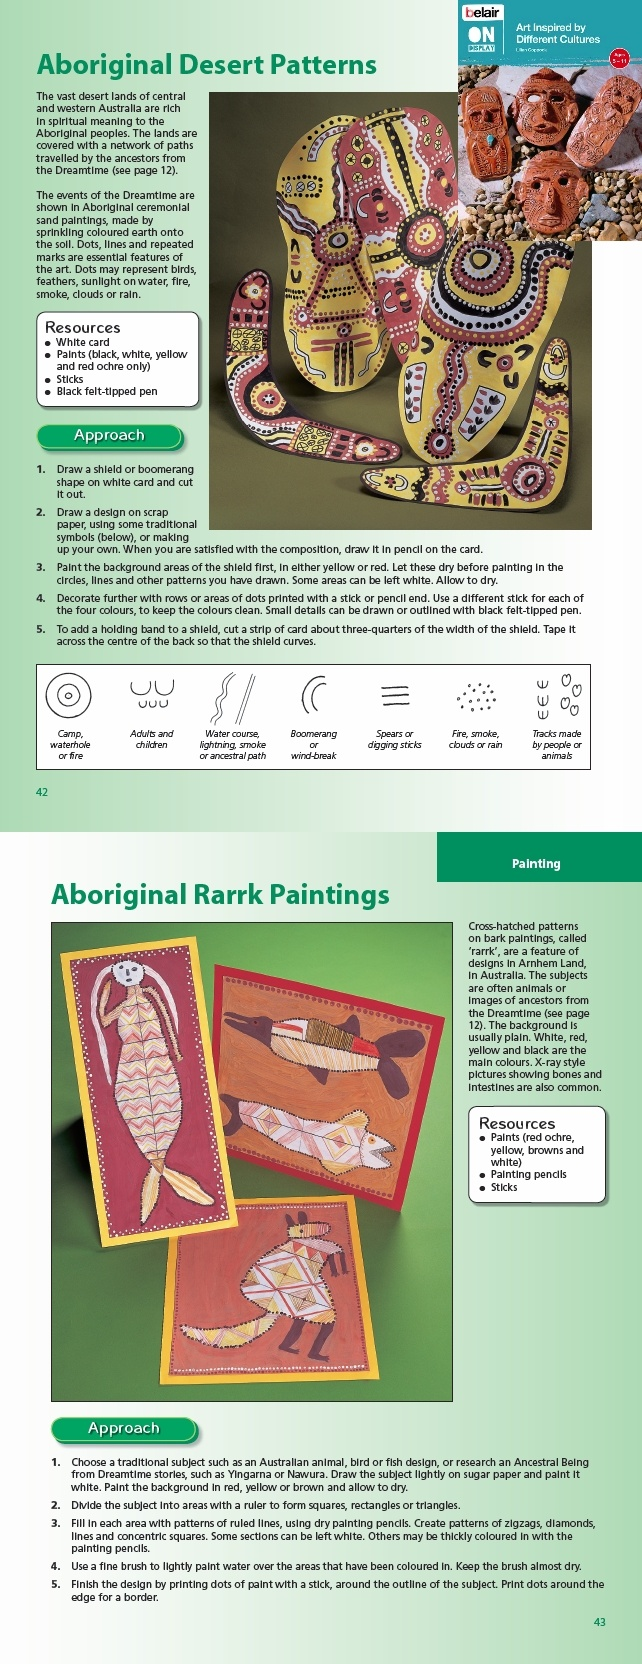 Australia Day - activity exploring aboriginal art - taken from Belair On Display Art Inspired by Different Cultures